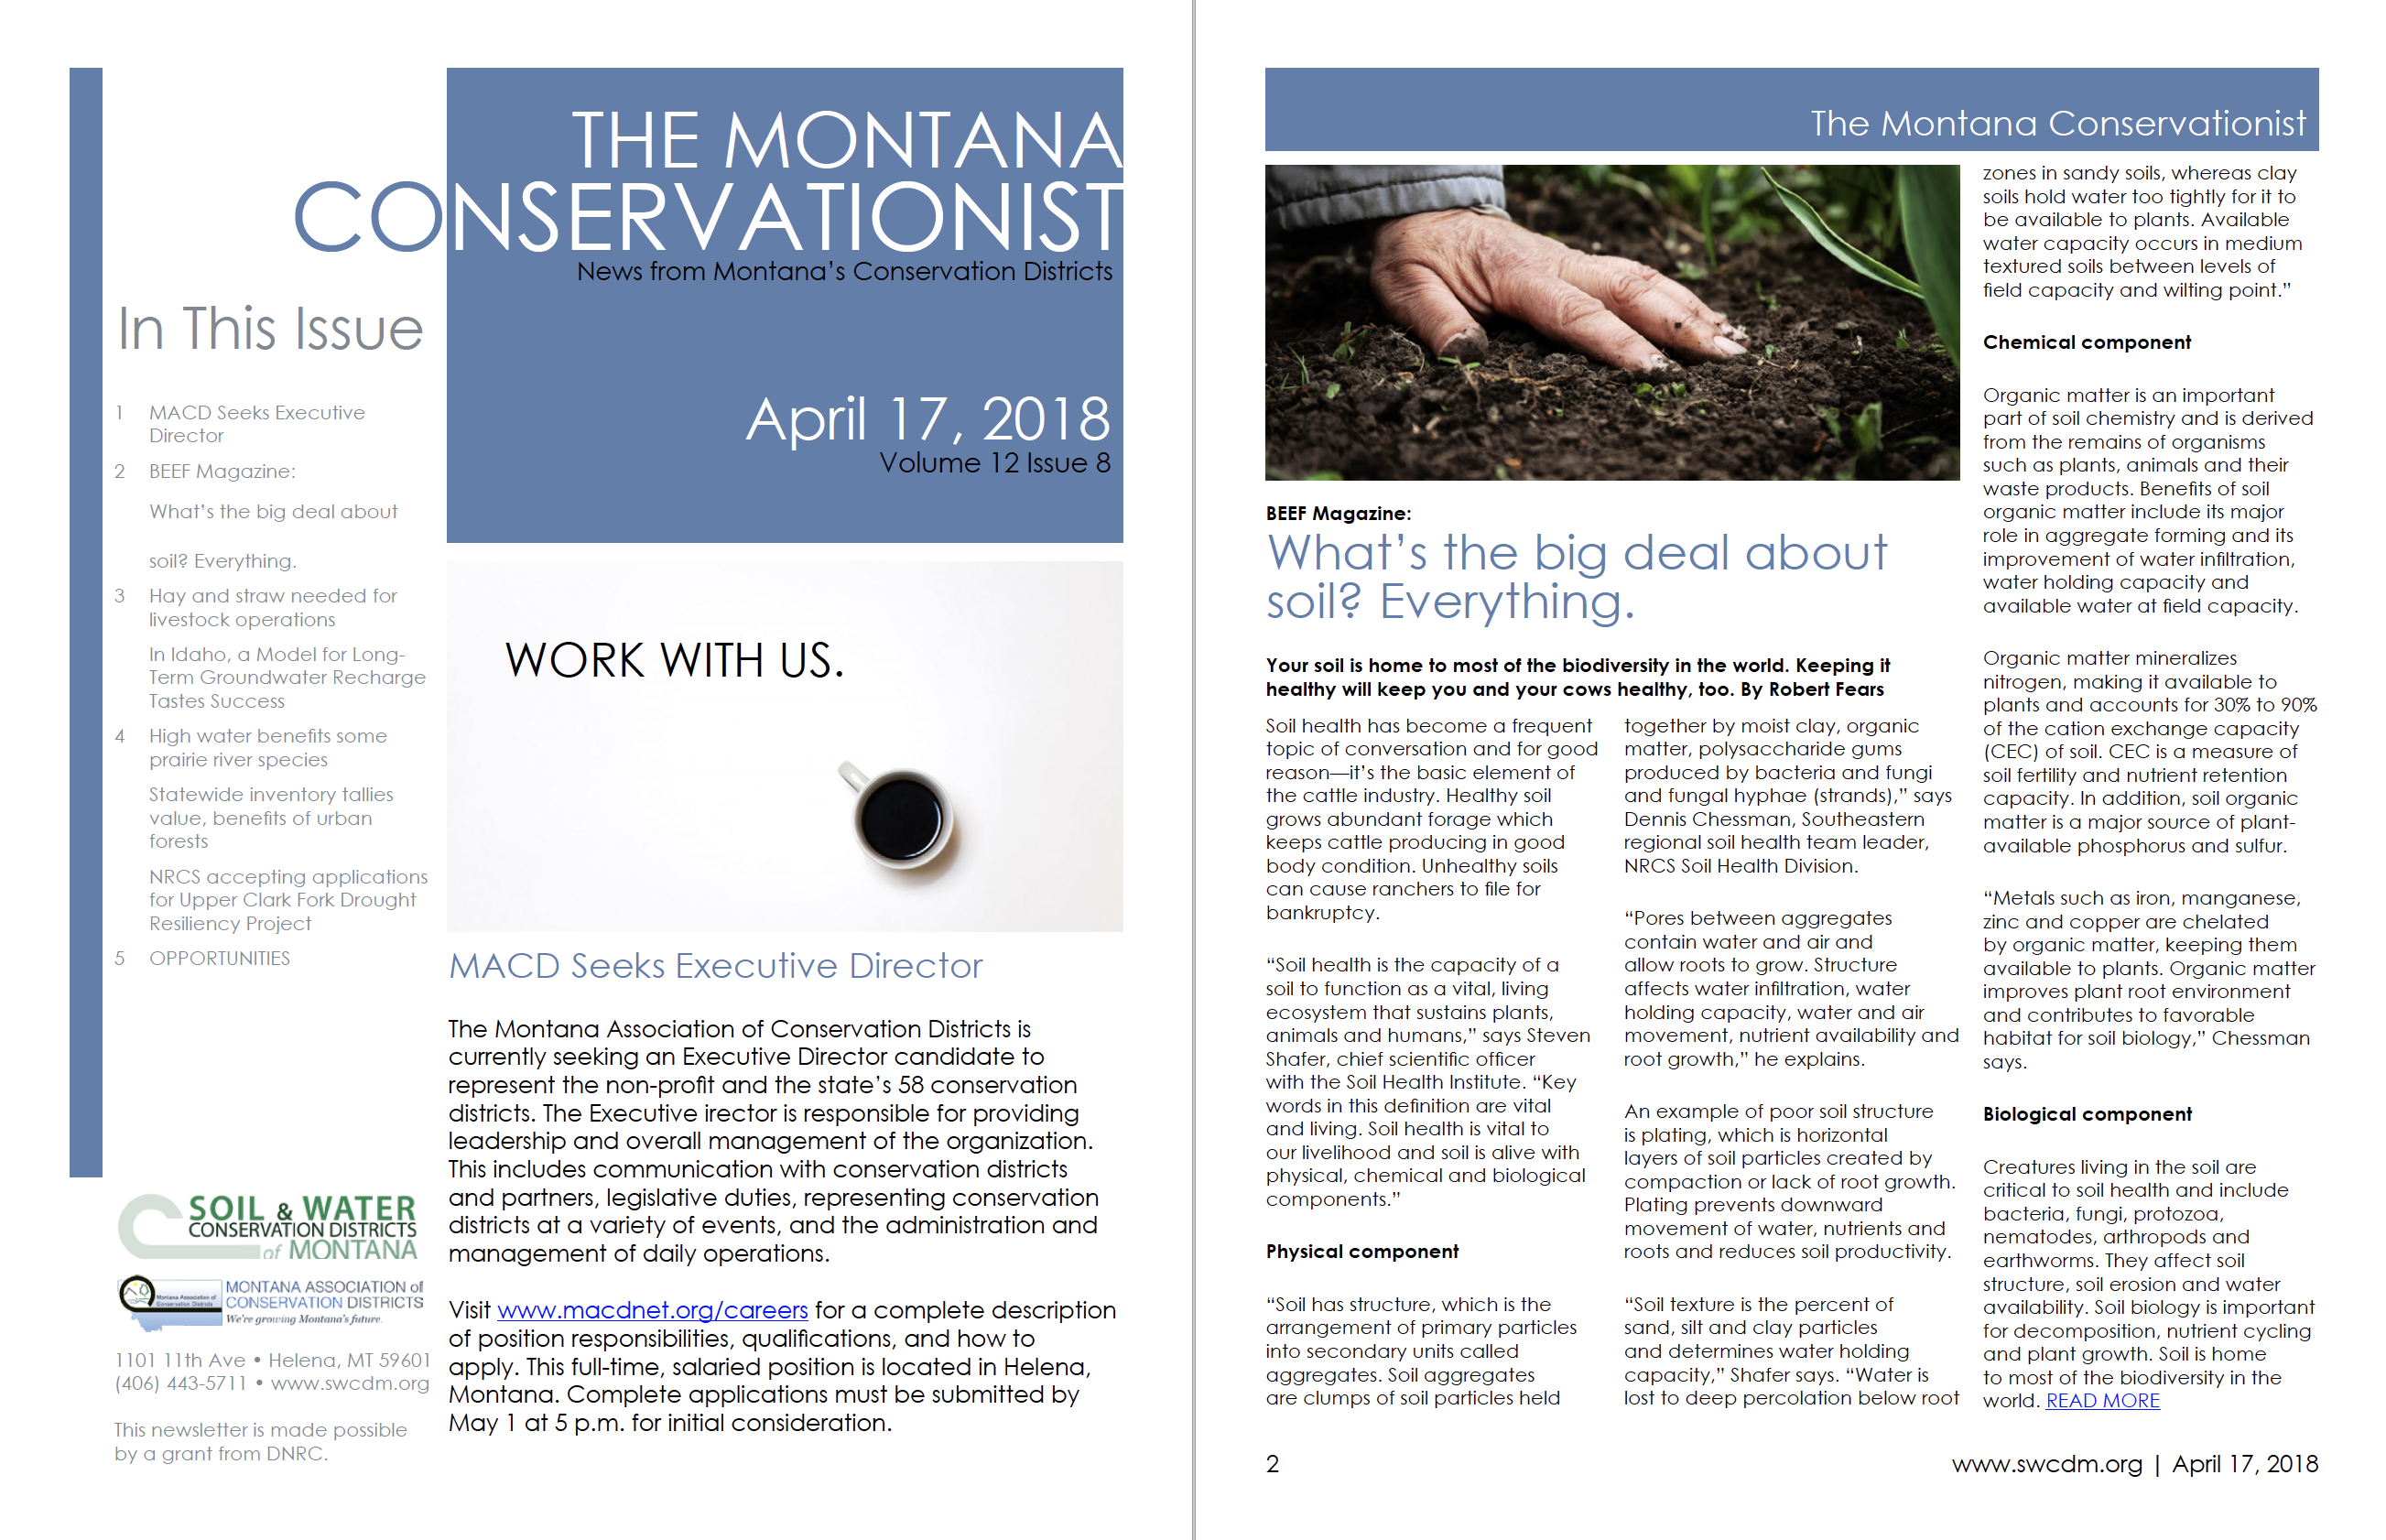 The Montana Conservationist April 17